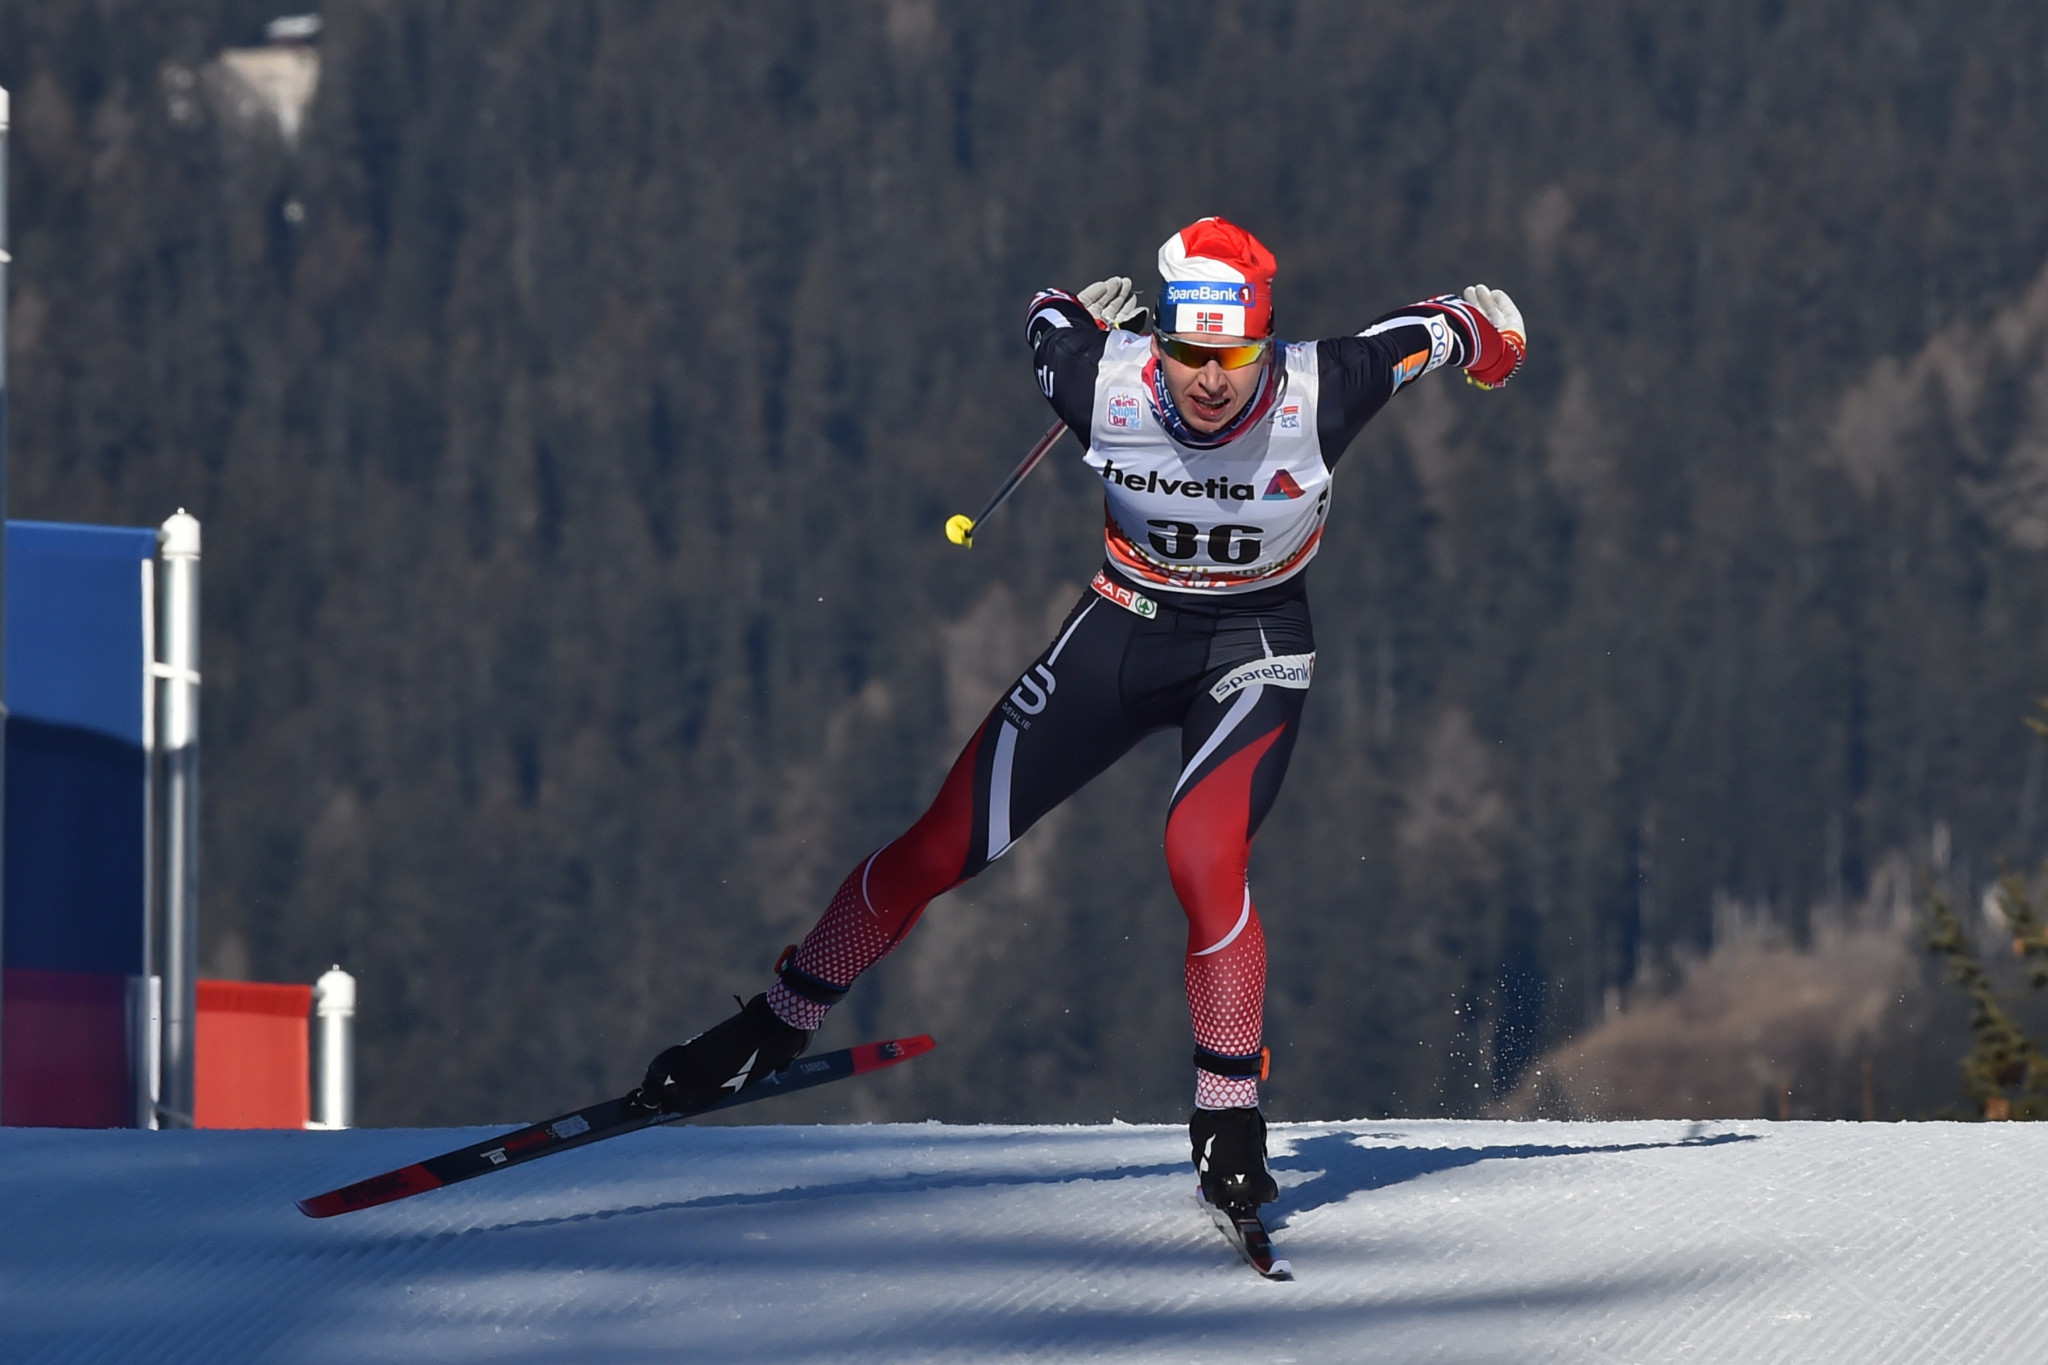 Simen Hegstad Krueger won his first-ever FIS Cross-Country World Cup event in Toblach ©Getty Images